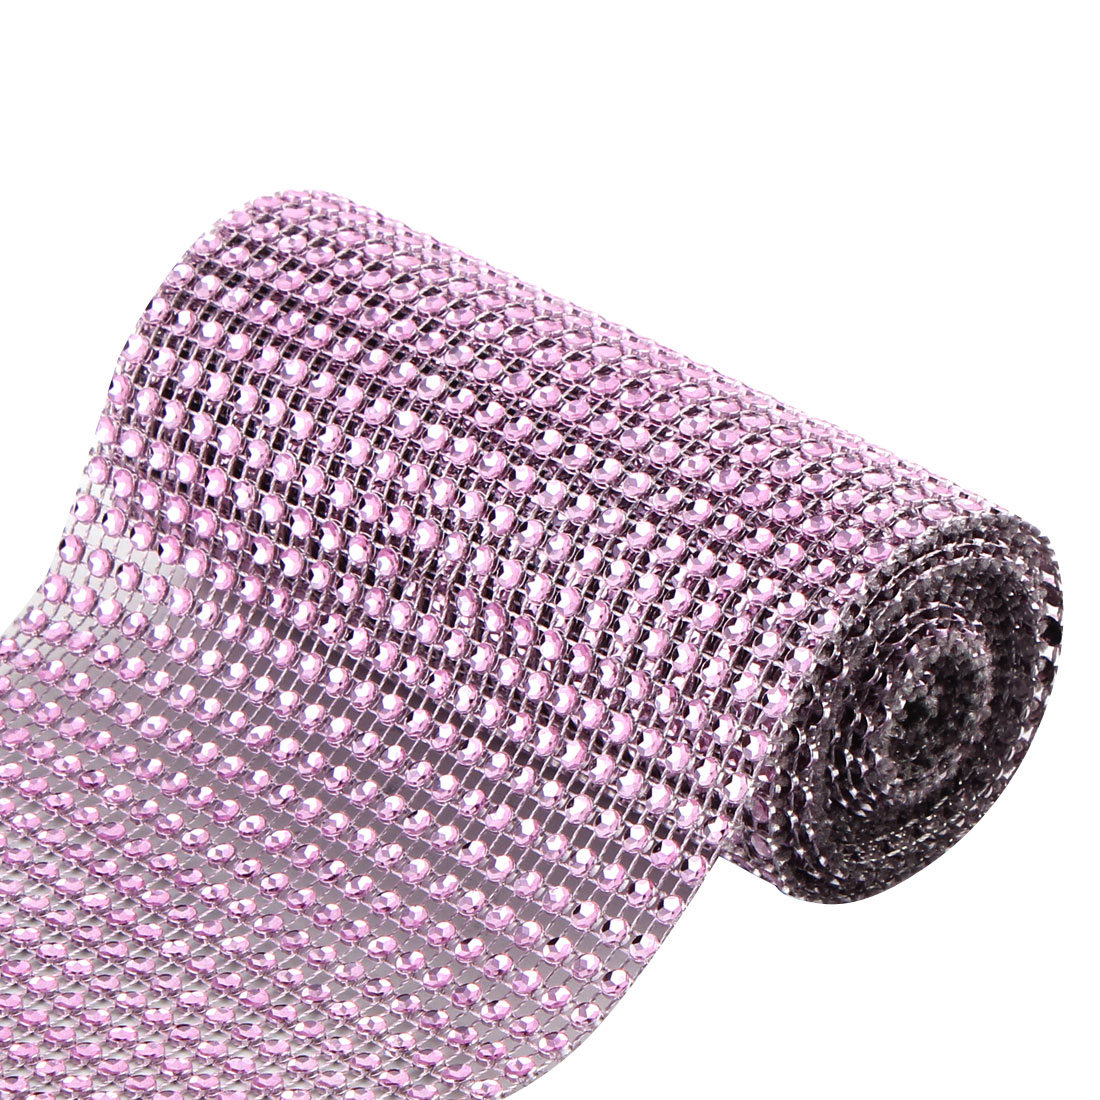 Wedding Party Plastic Cake Decoration Rhinestone Mesh Diamond Ribbon Pink 2 Yard